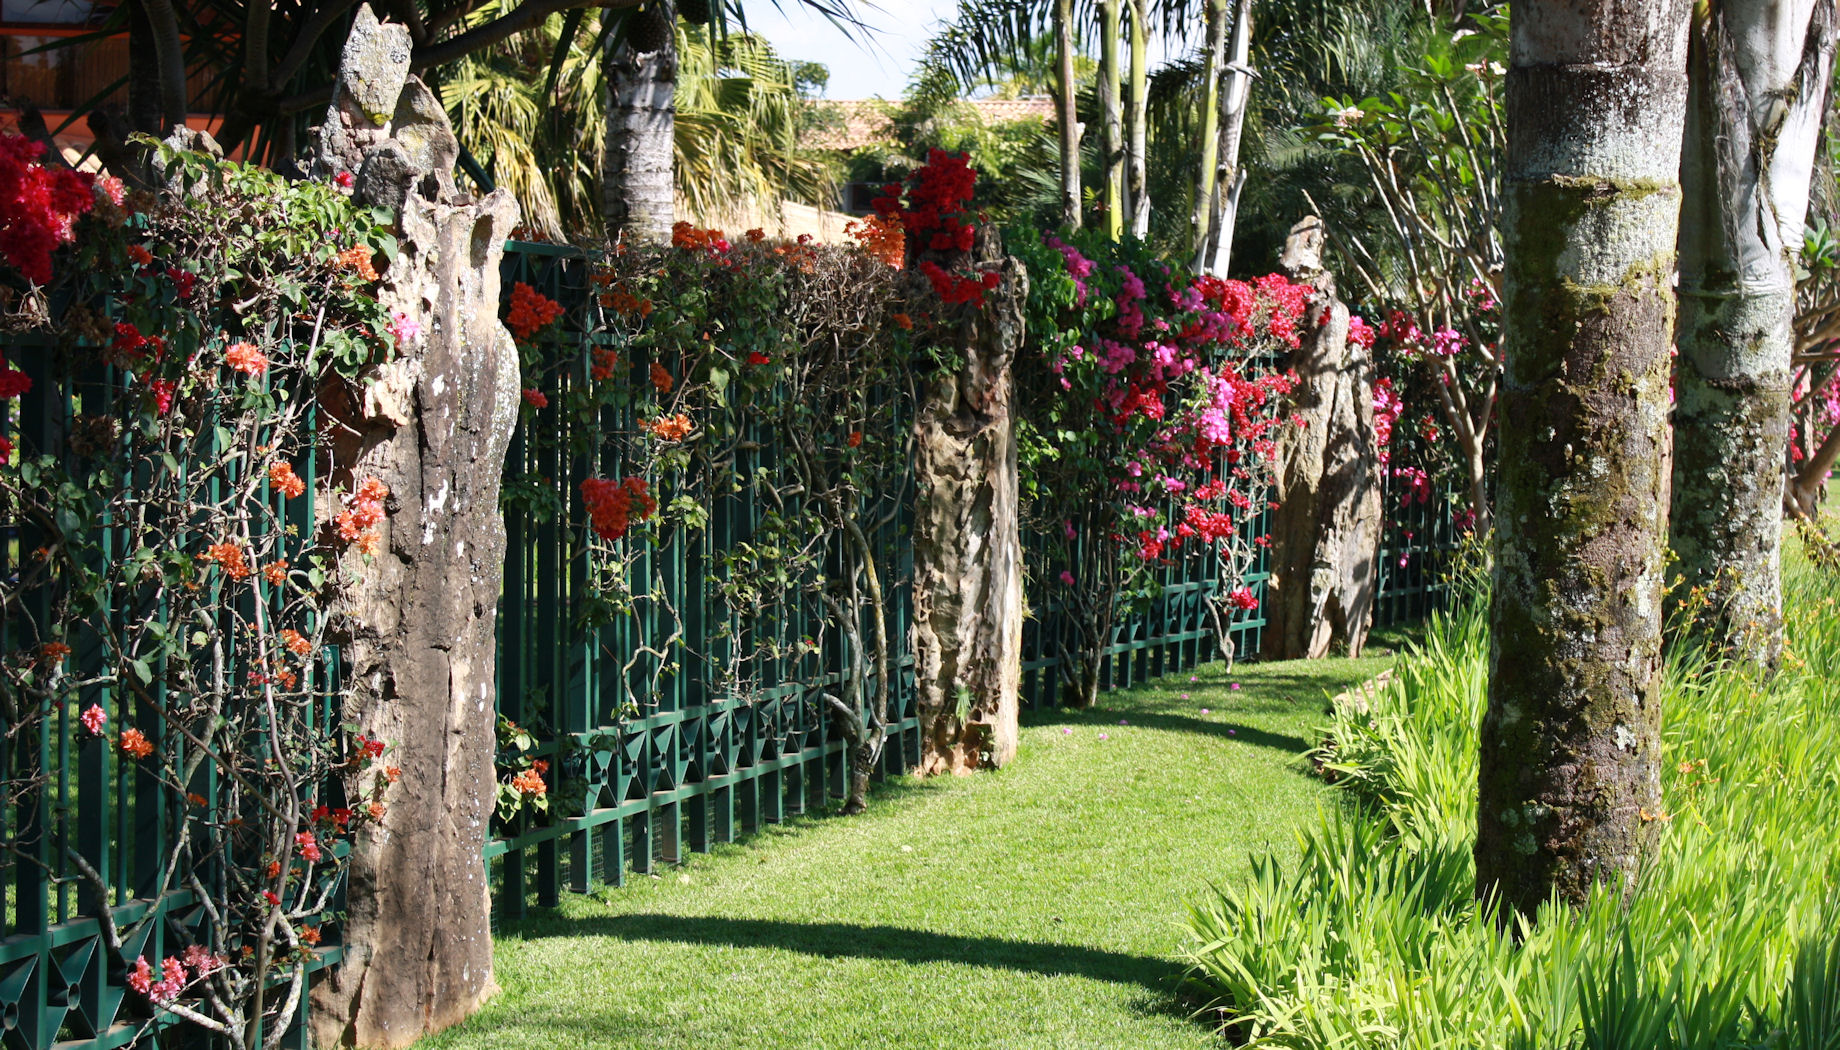 Ornate_fence_in_Brasilia_Lago_Sul.jpg